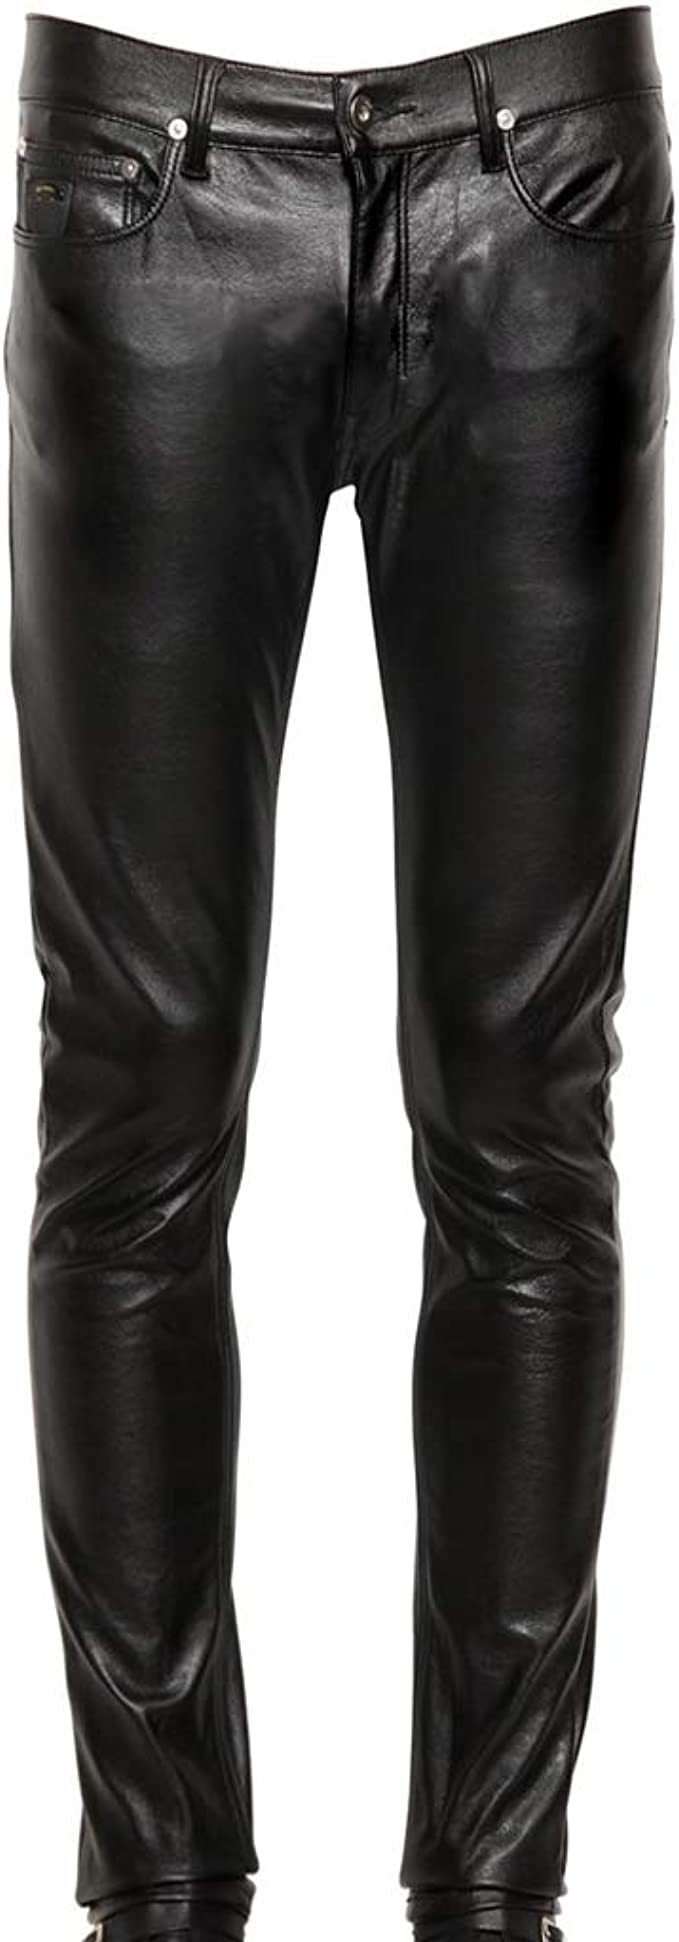 Koza Leathers Mens Leather Pant Trouser Genuine Lambskin Real Leather Casual Pant